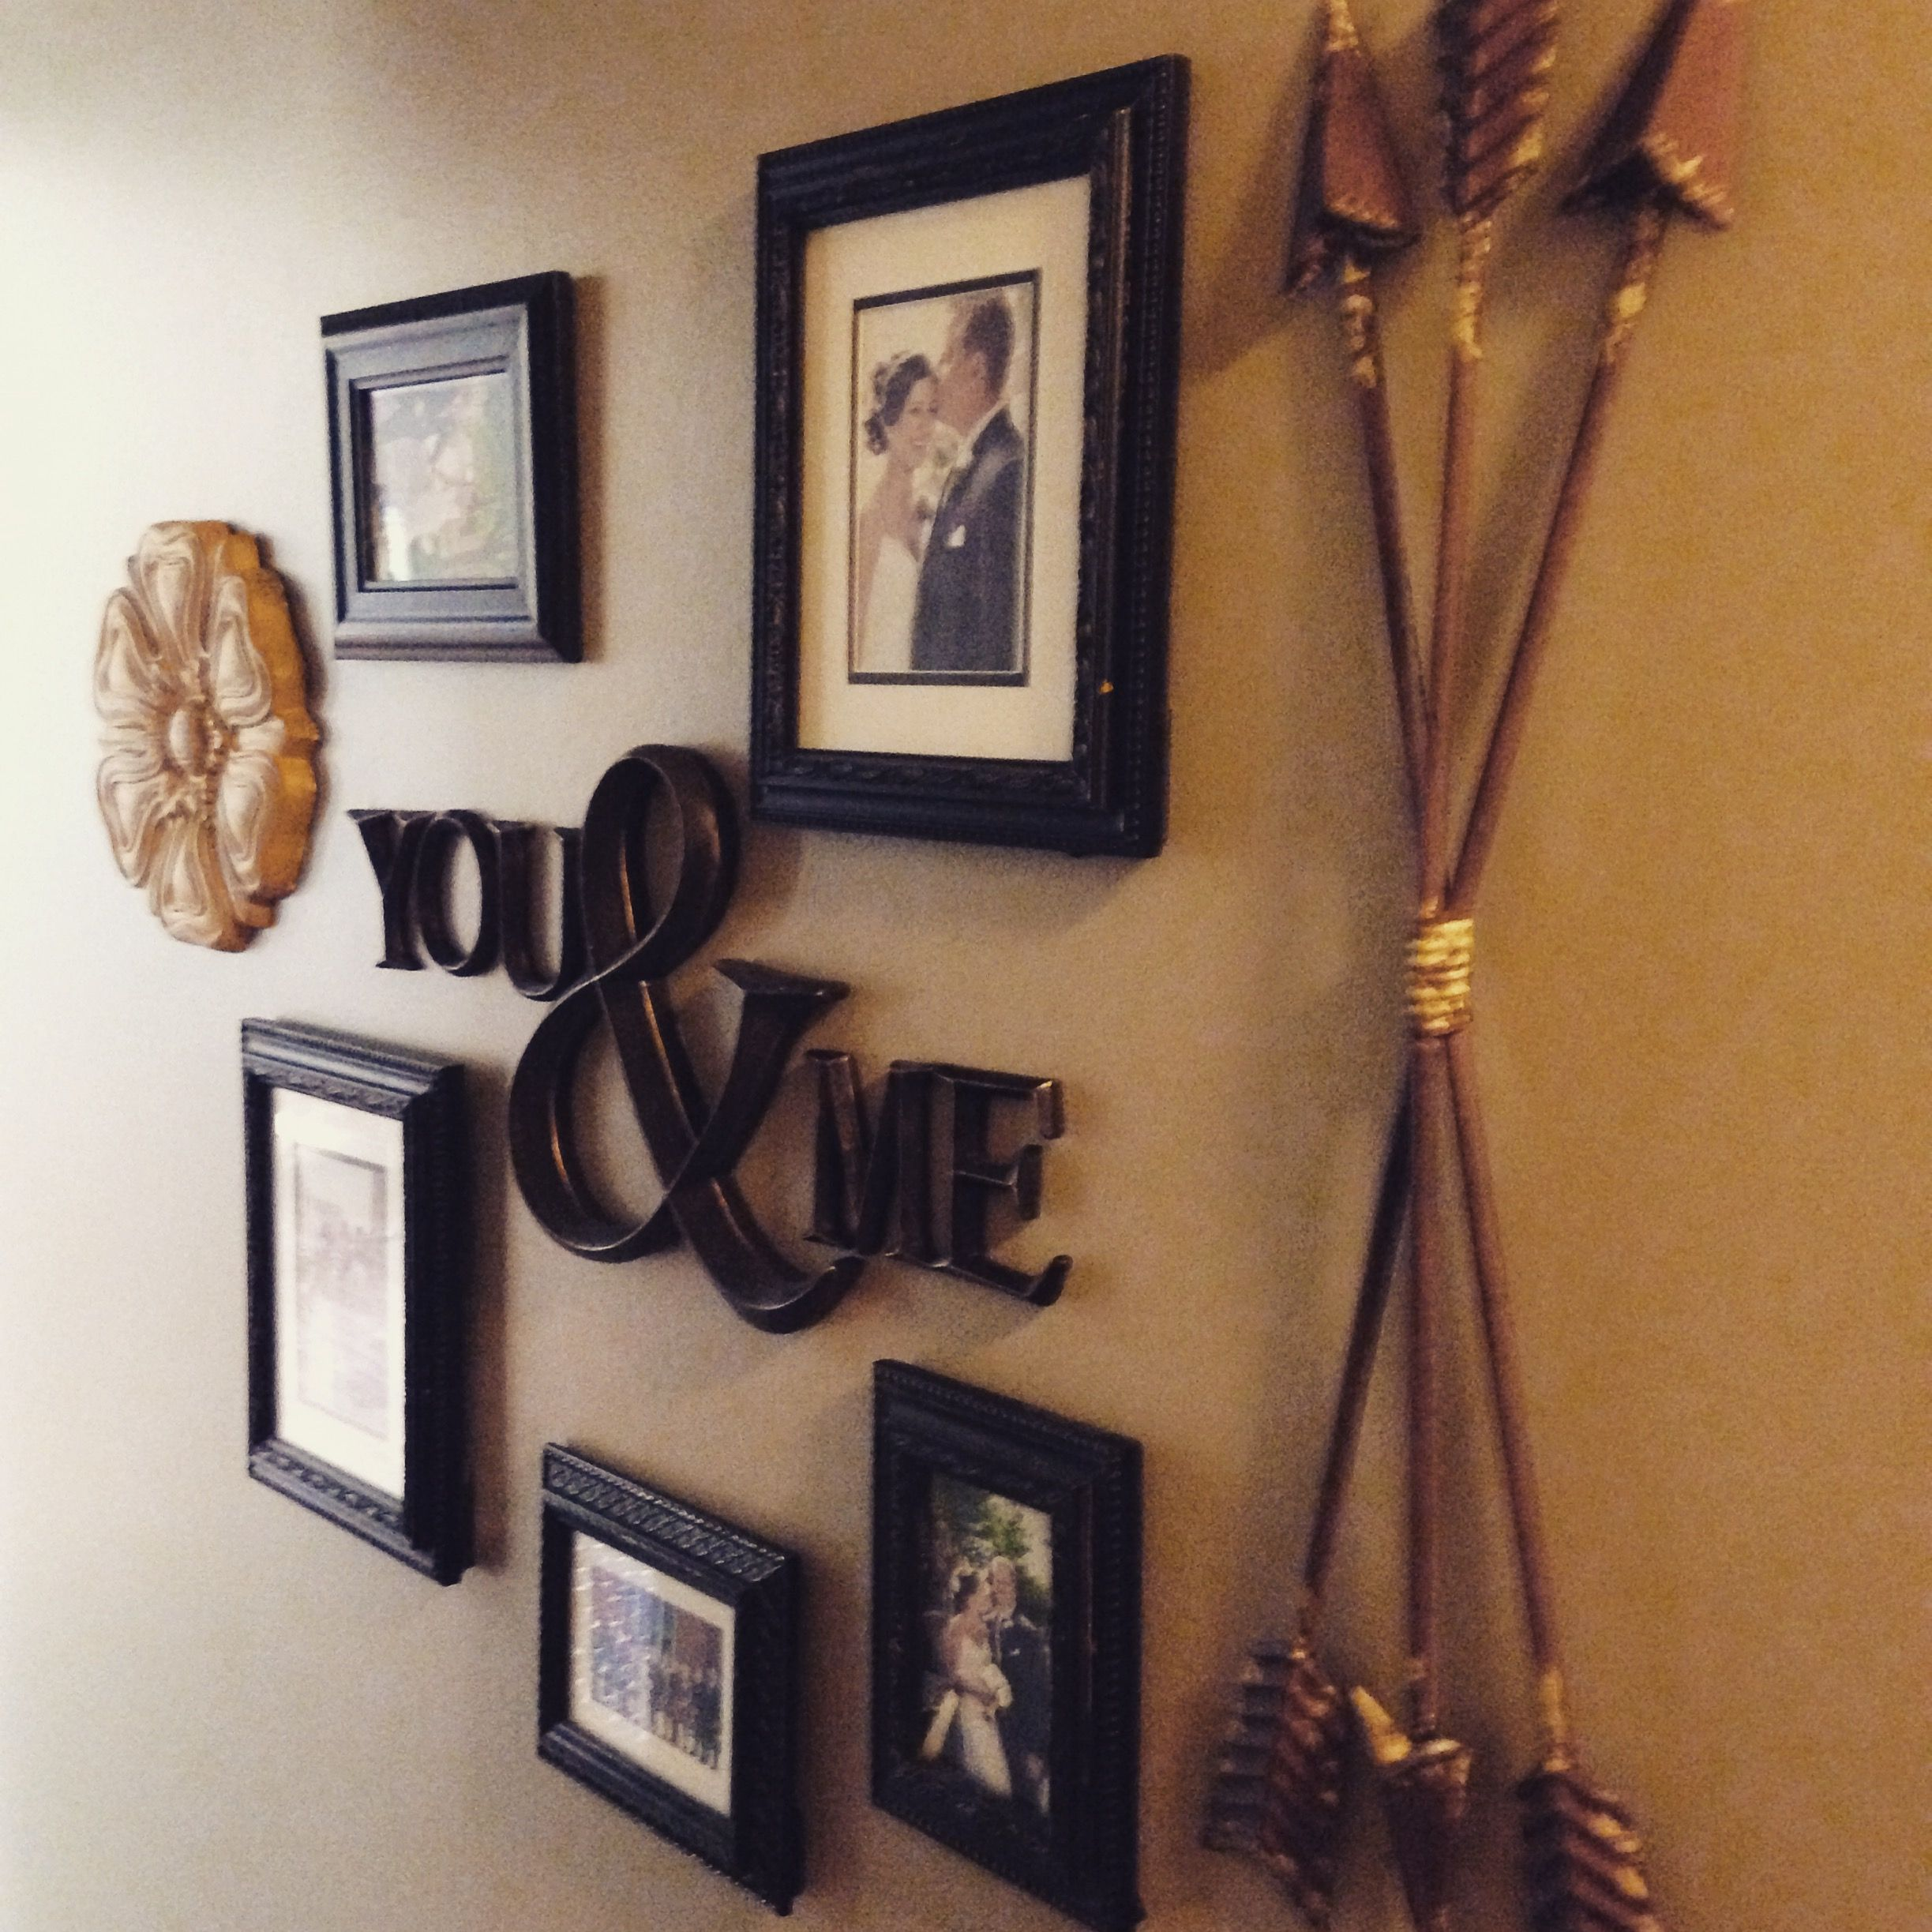 Gallery wall, accents from hobby lobby | Gallery wall ... on Sconces Wall Decor Hobby Lobby id=25316